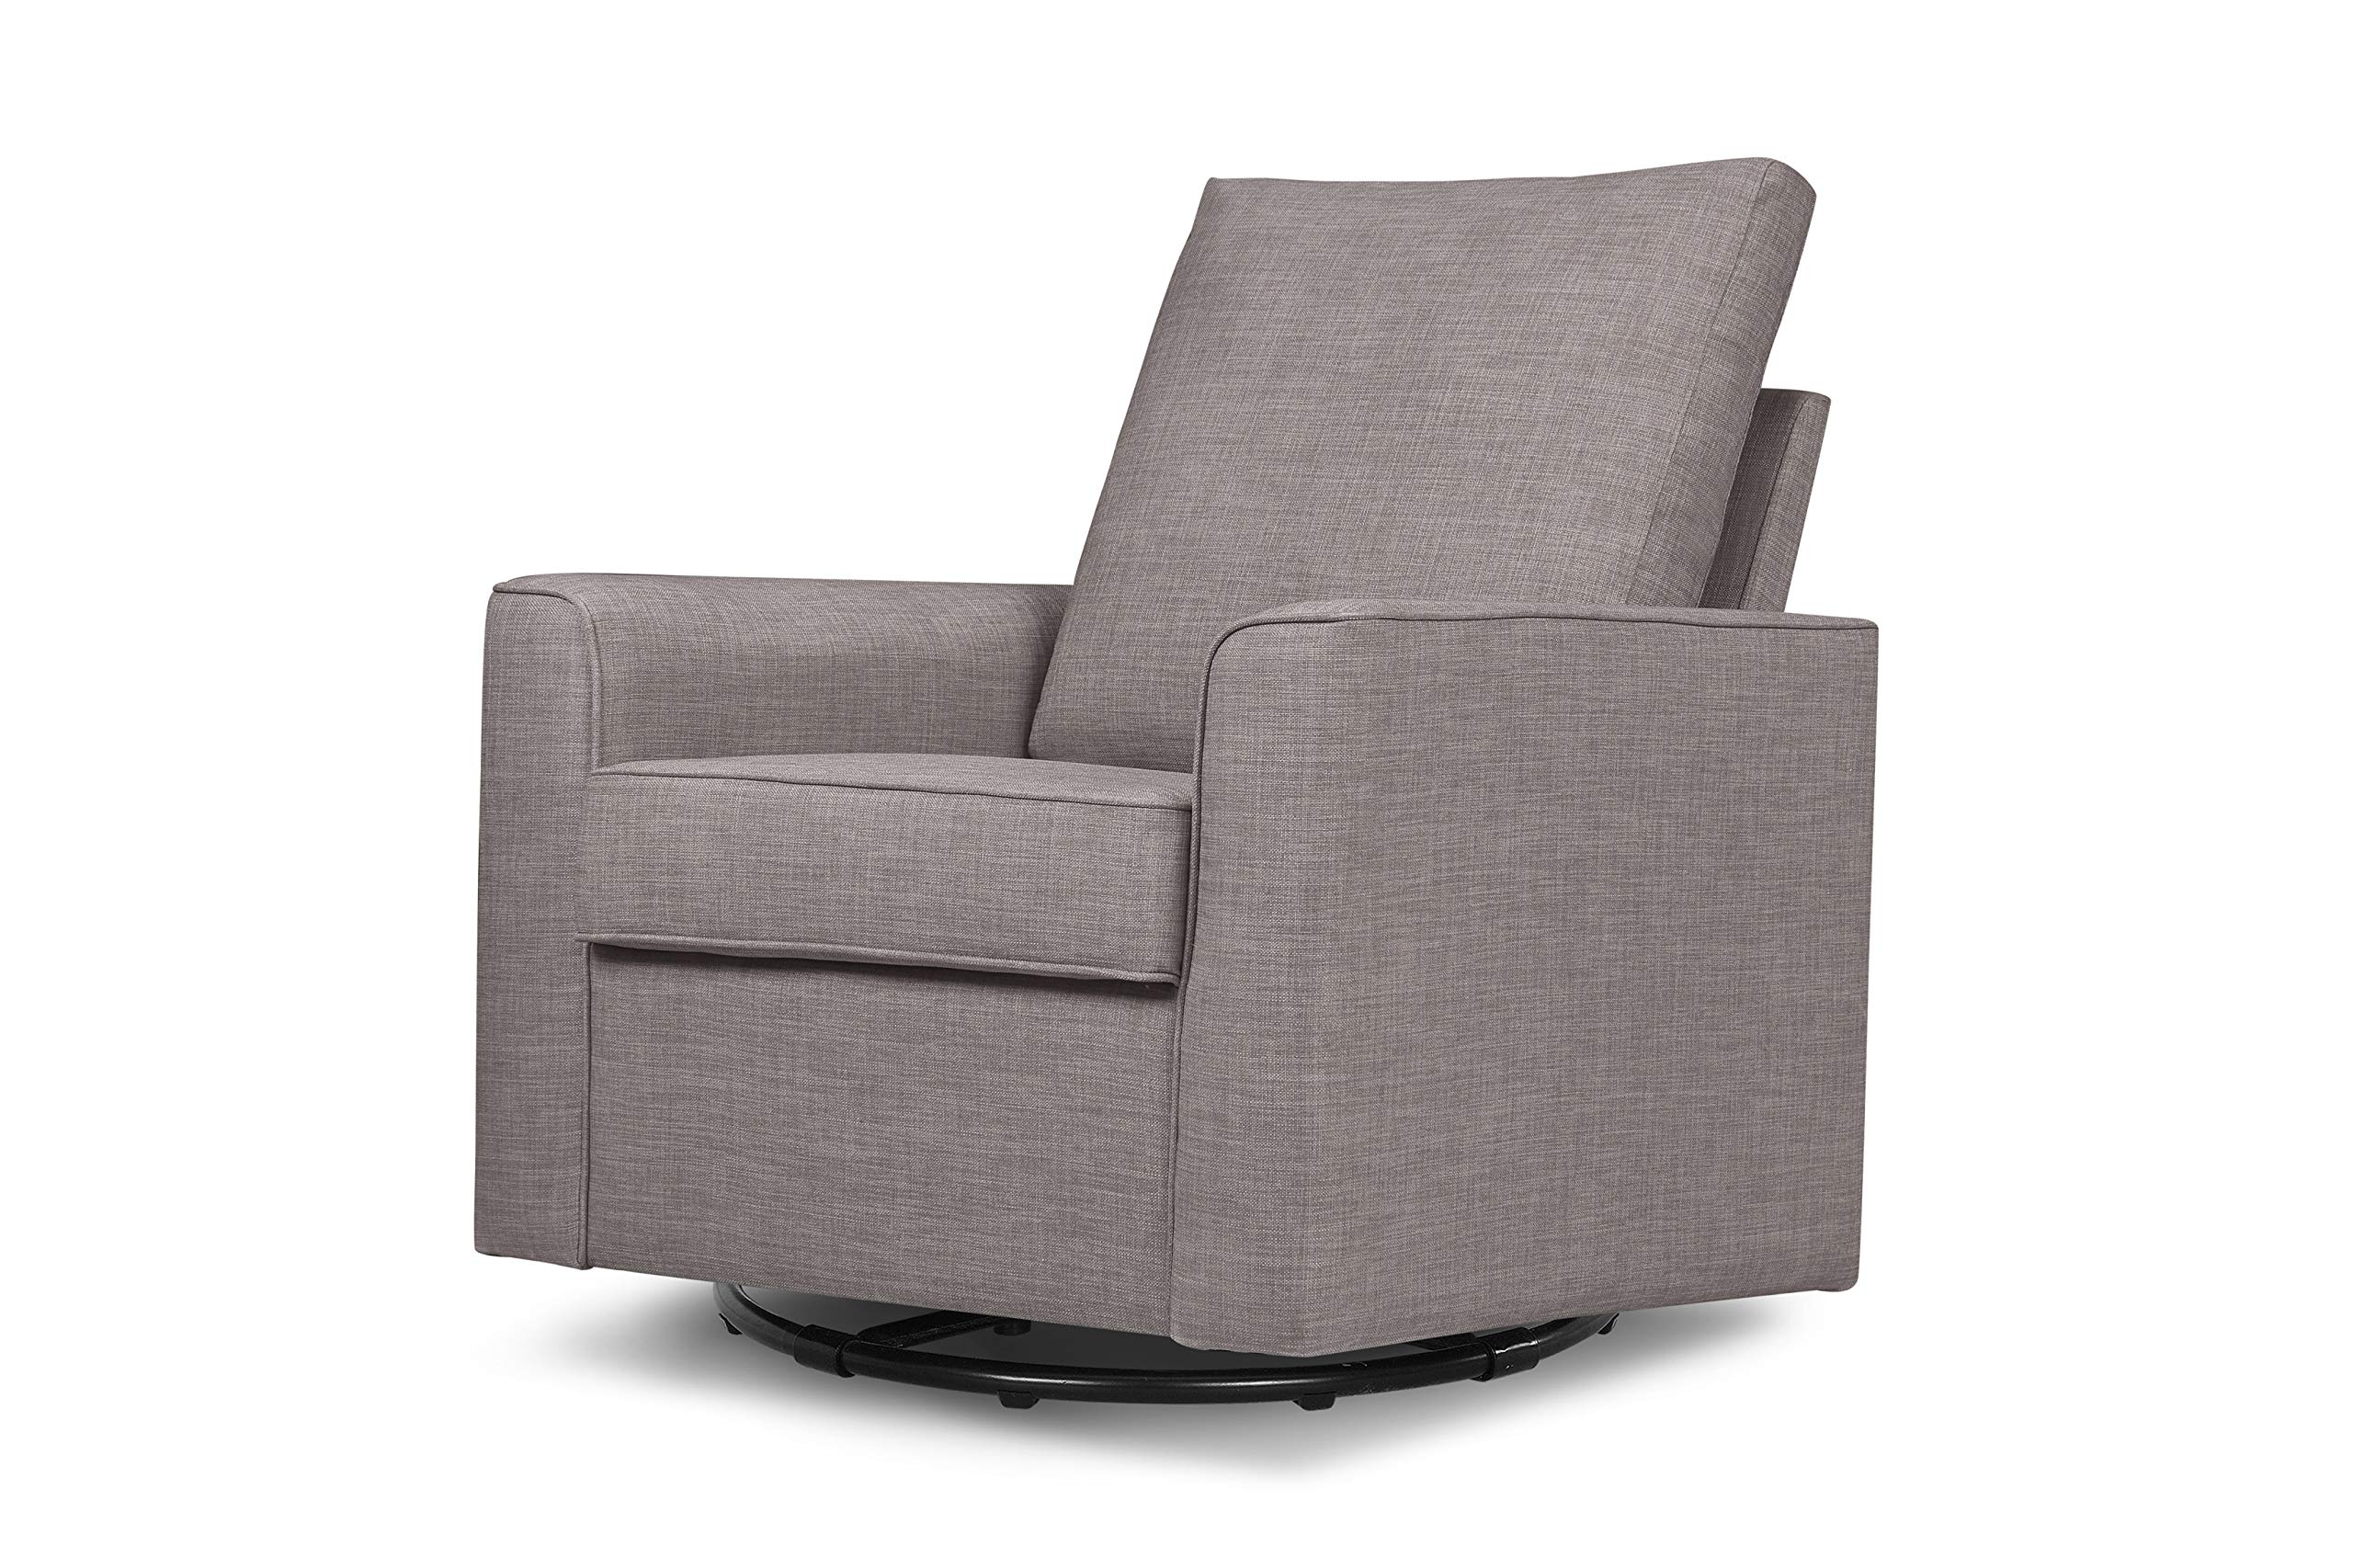 Million Dollar Baby Classic Alden Swivel Glider, Grey Tweed by Million Dollar Baby Classic